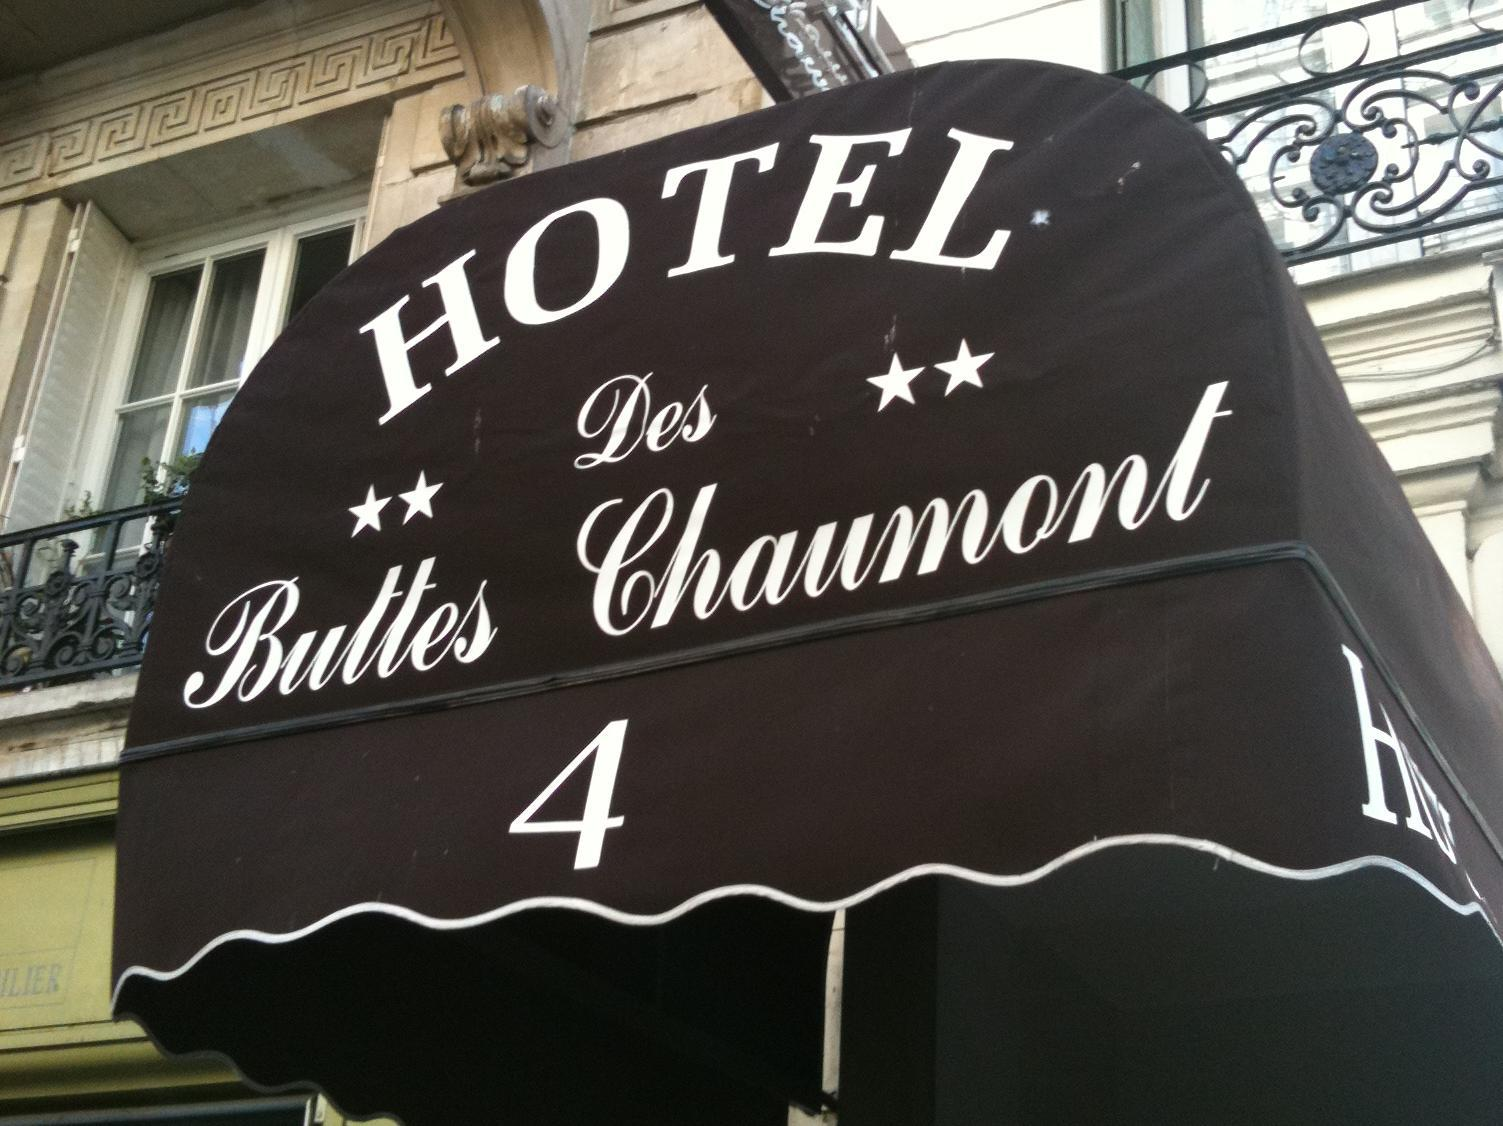 Hotel Buttes Chaumont - Hotell och Boende i Frankrike i Europa